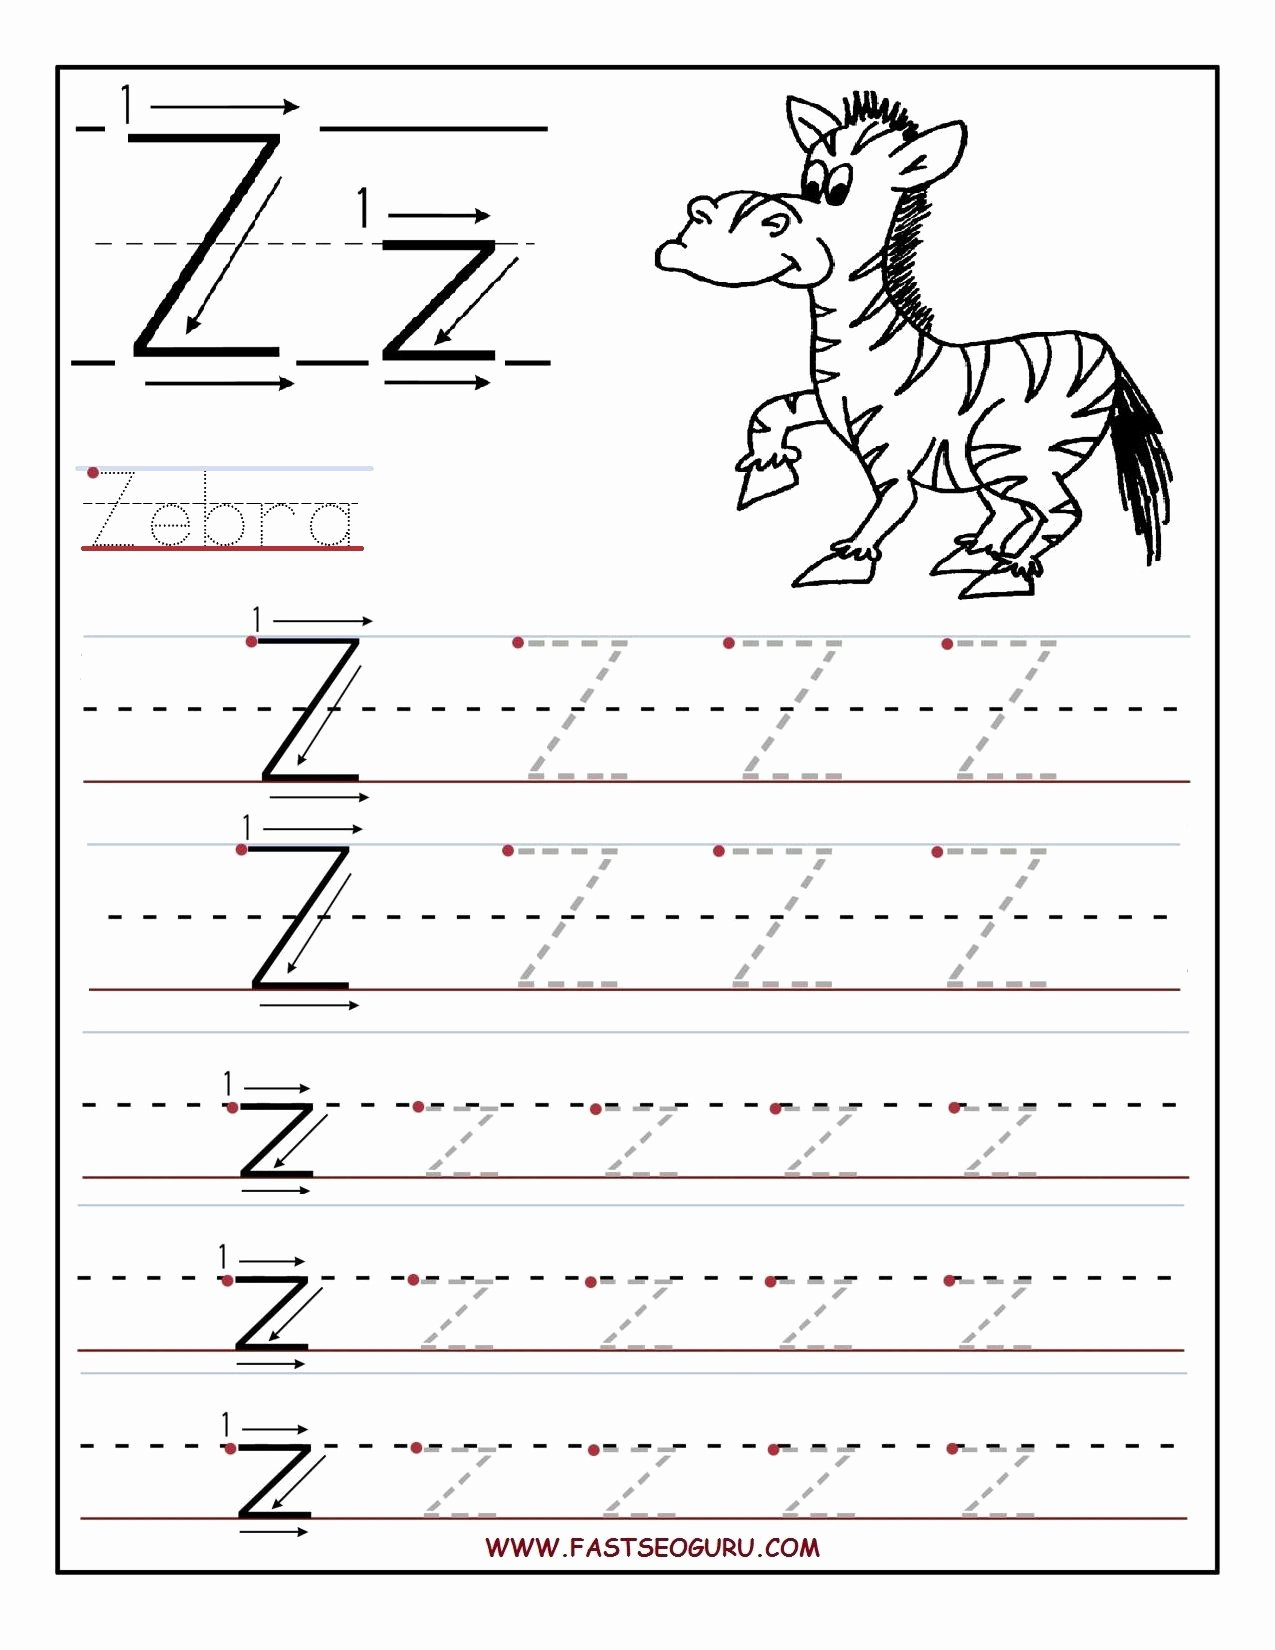 Letter Z Worksheets for Preschoolers Beautiful Printable Letter Z Tracing Worksheets for Preschool